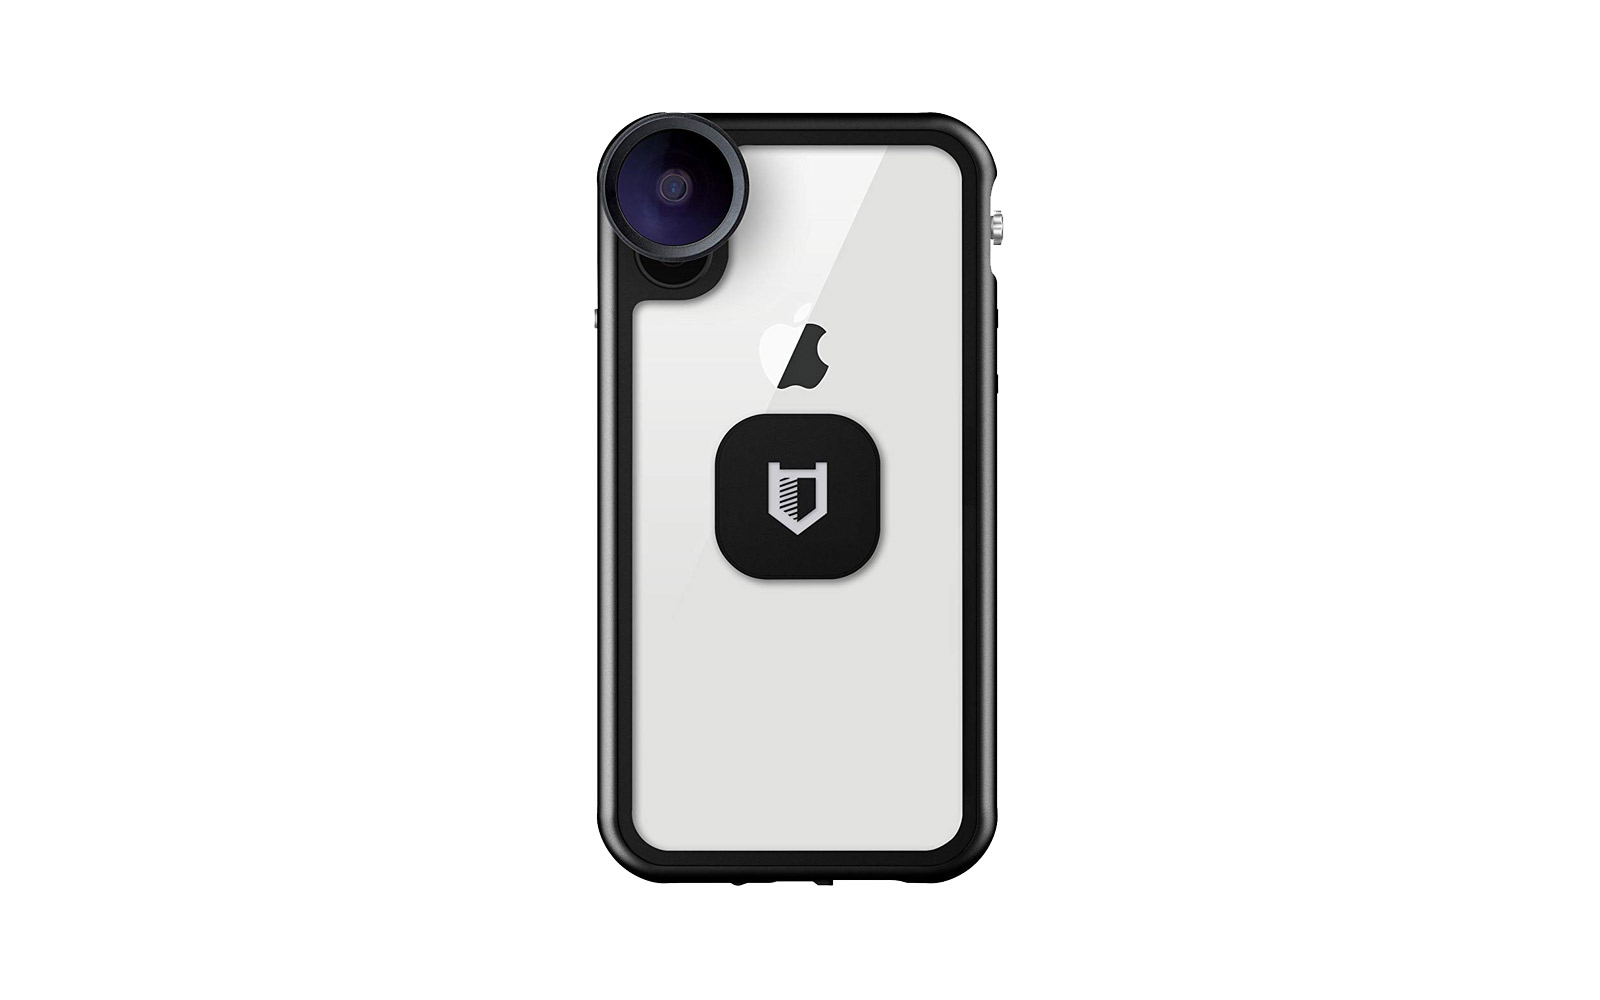 Best for Underwater Photos and Videos: Hitcase Shield Link Case